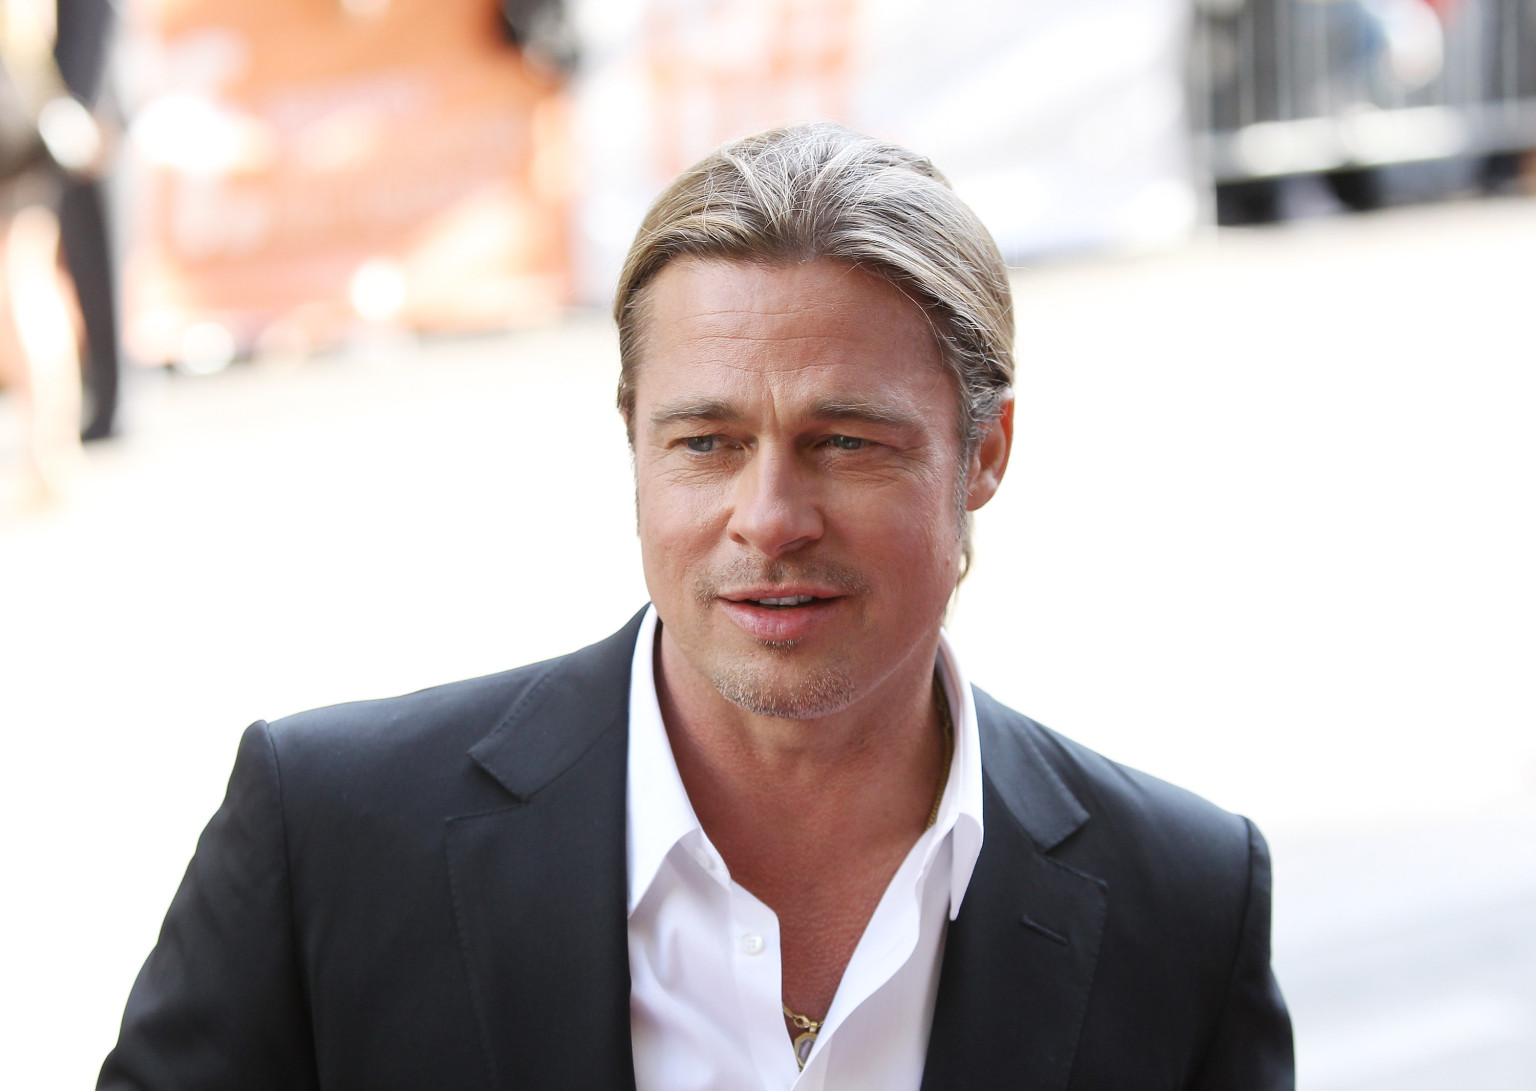 Brad Pitt World War z Hairstyle Brad Pitt on 'world War Z'